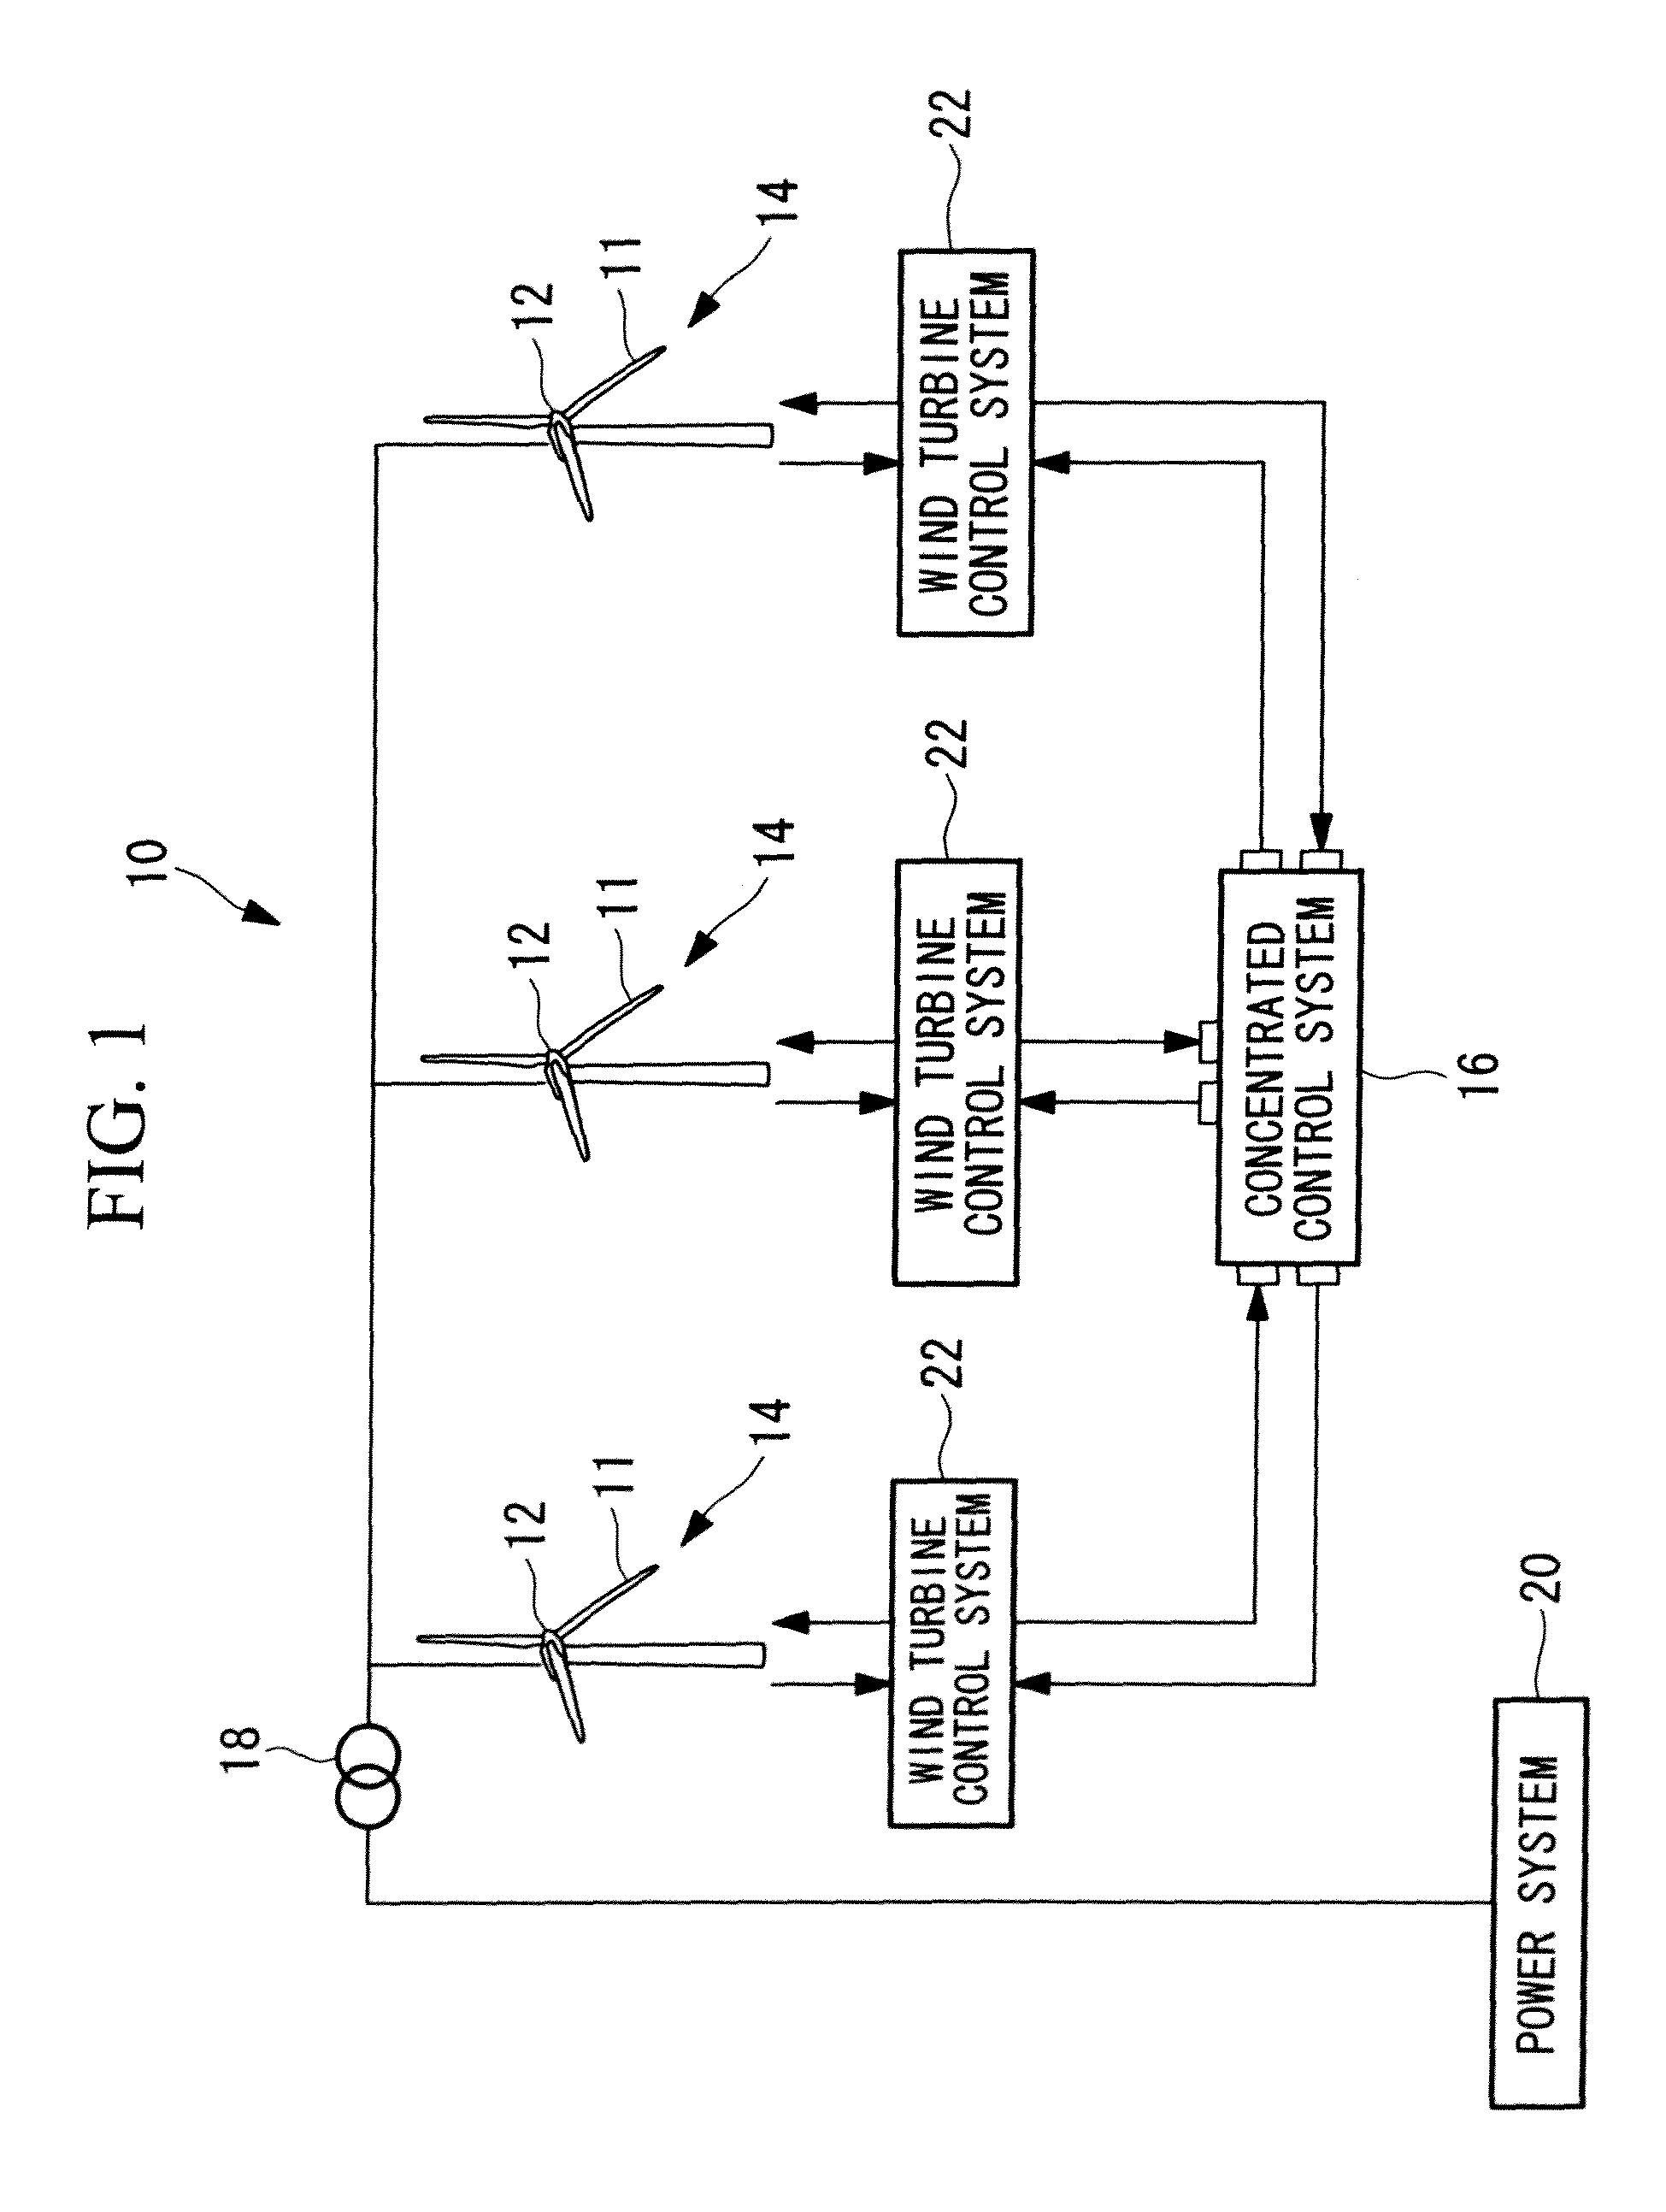 Patent EP A1 Control device for wind power generation